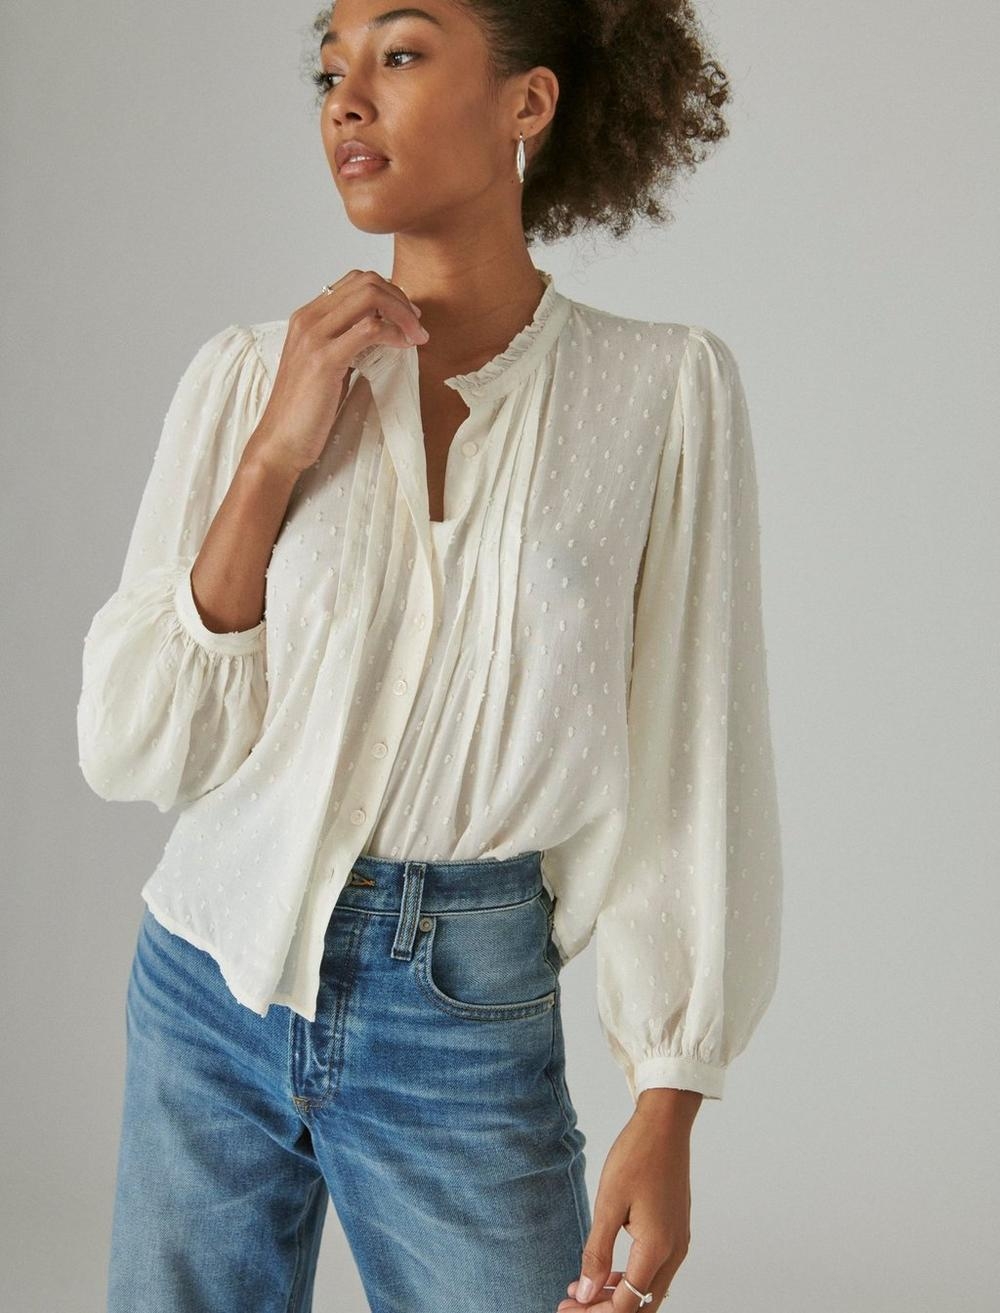 CLIP DOT LONG SLEEVE BUTTON UP BLOUSE, image 6